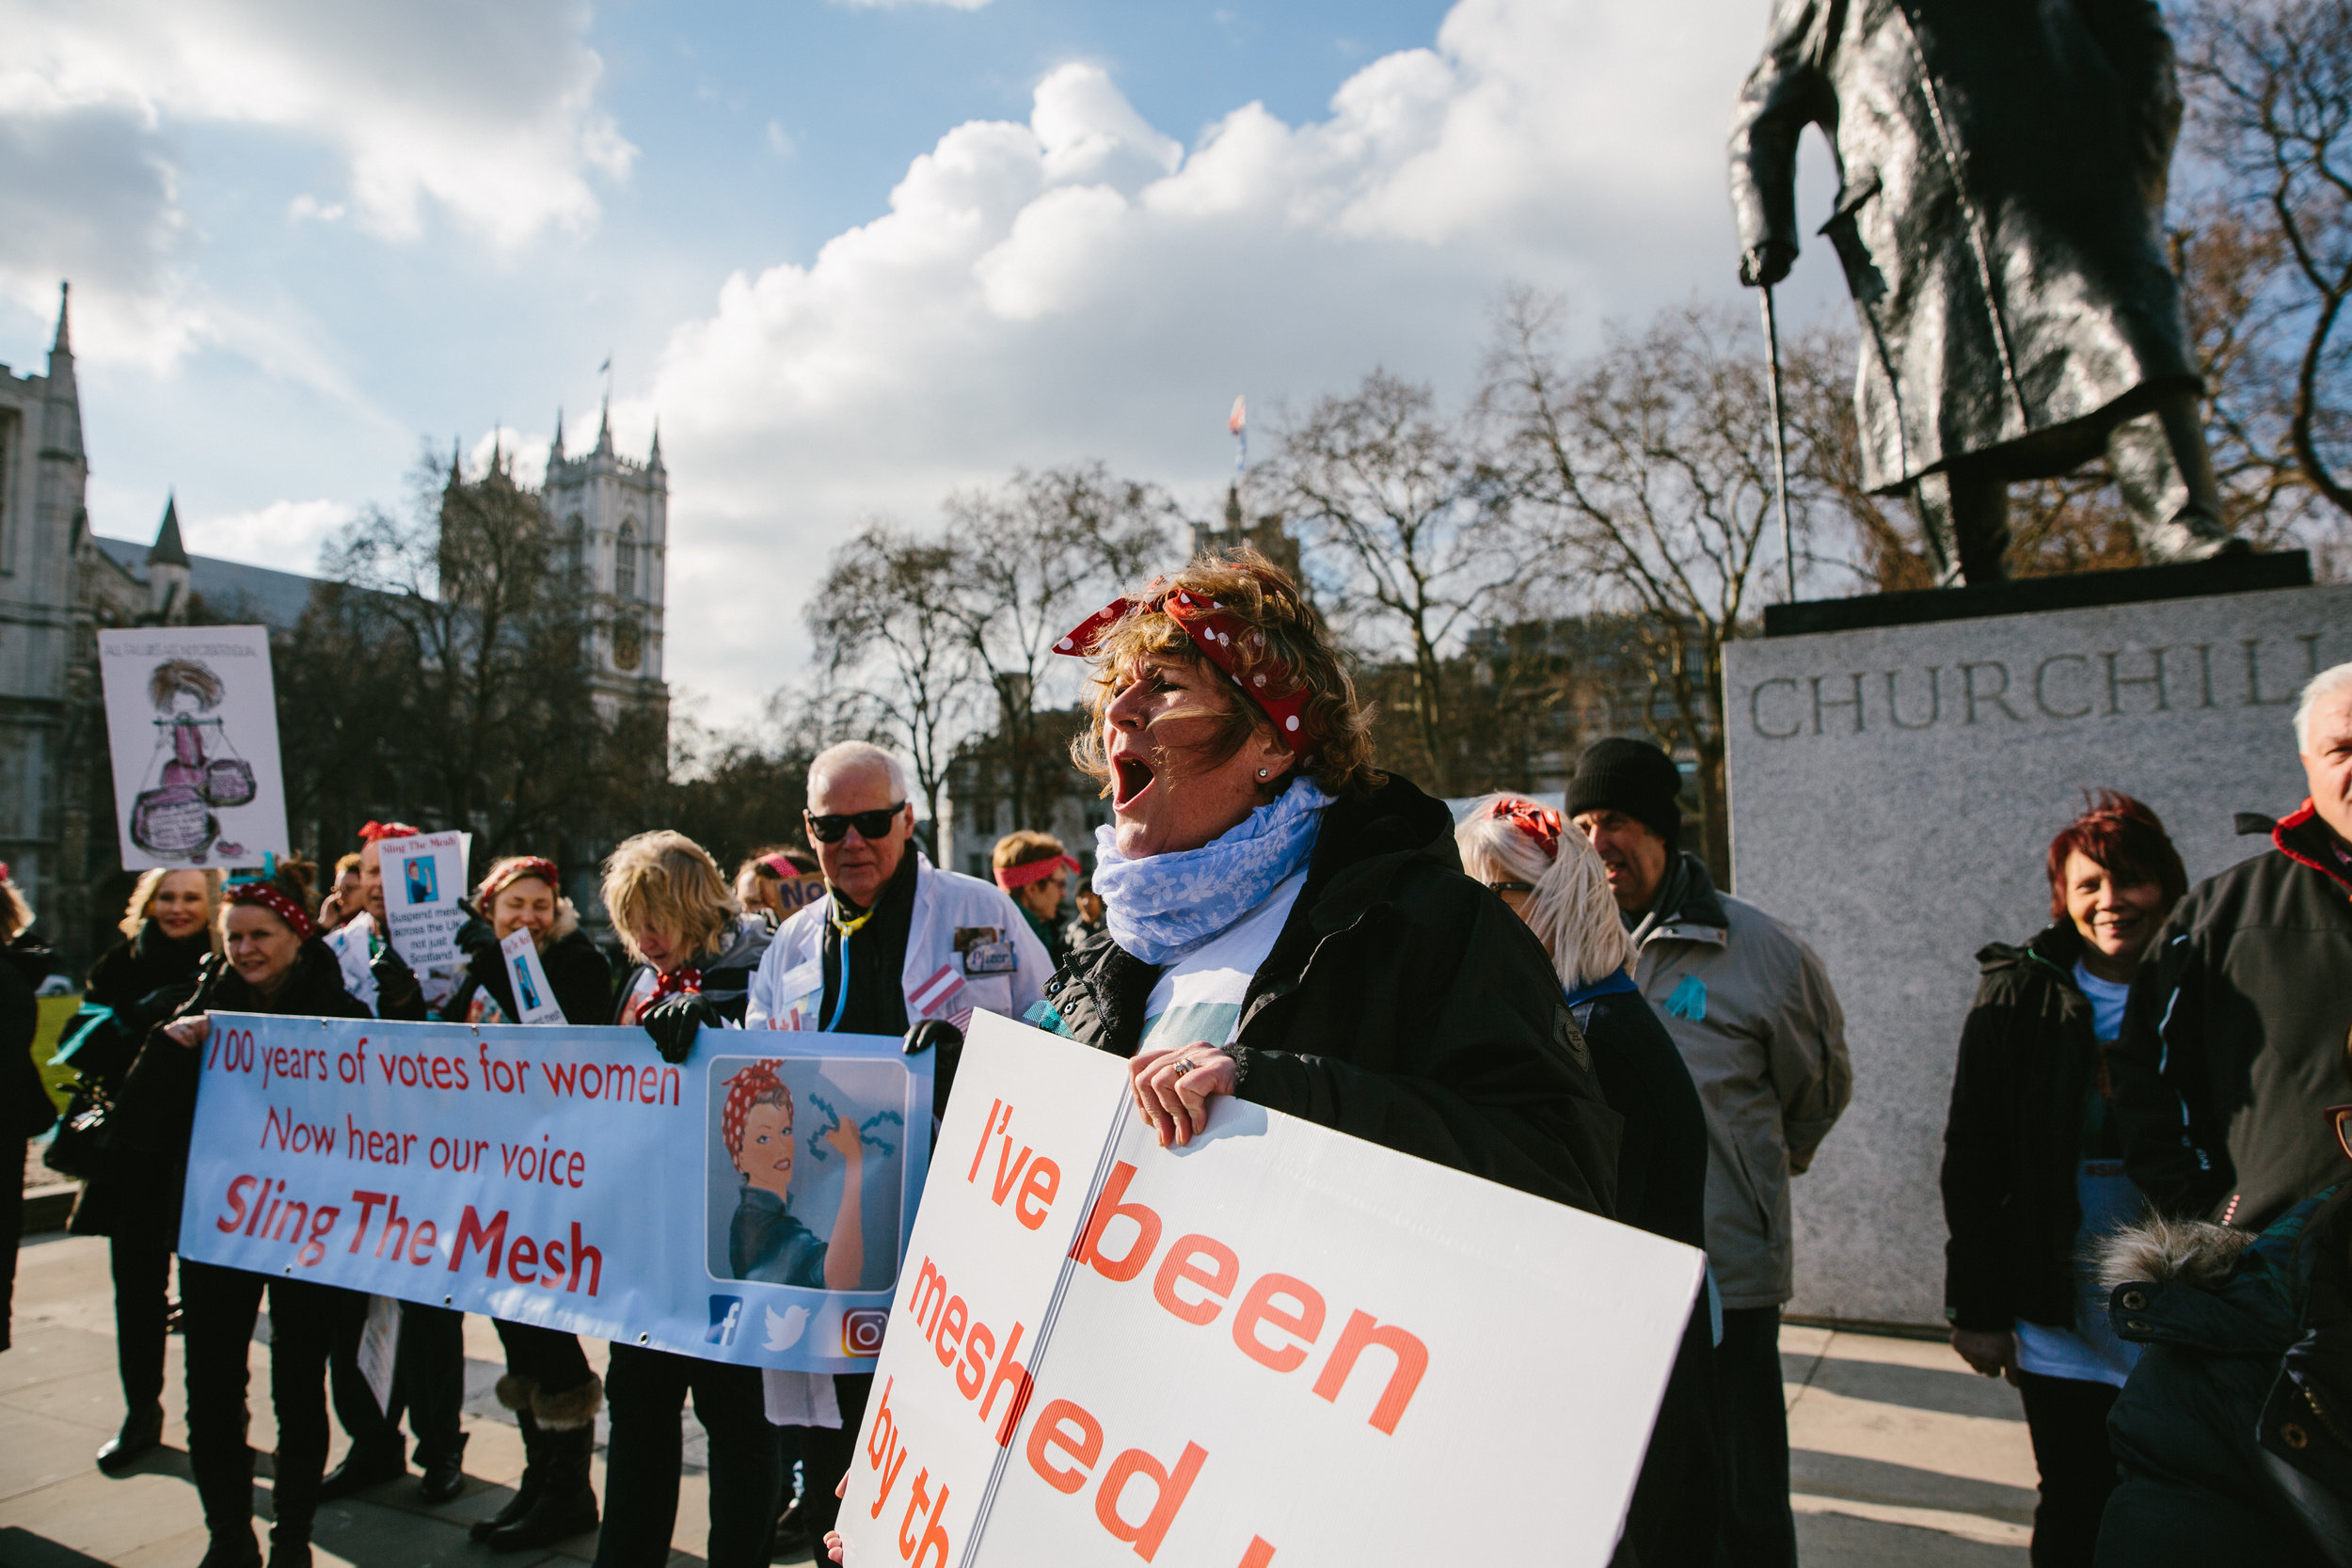 Campaigners shared their concerns with the public in Parliament Square, many of whom had never heard of mesh - sometimes called 'tape' - or the effects that it can have